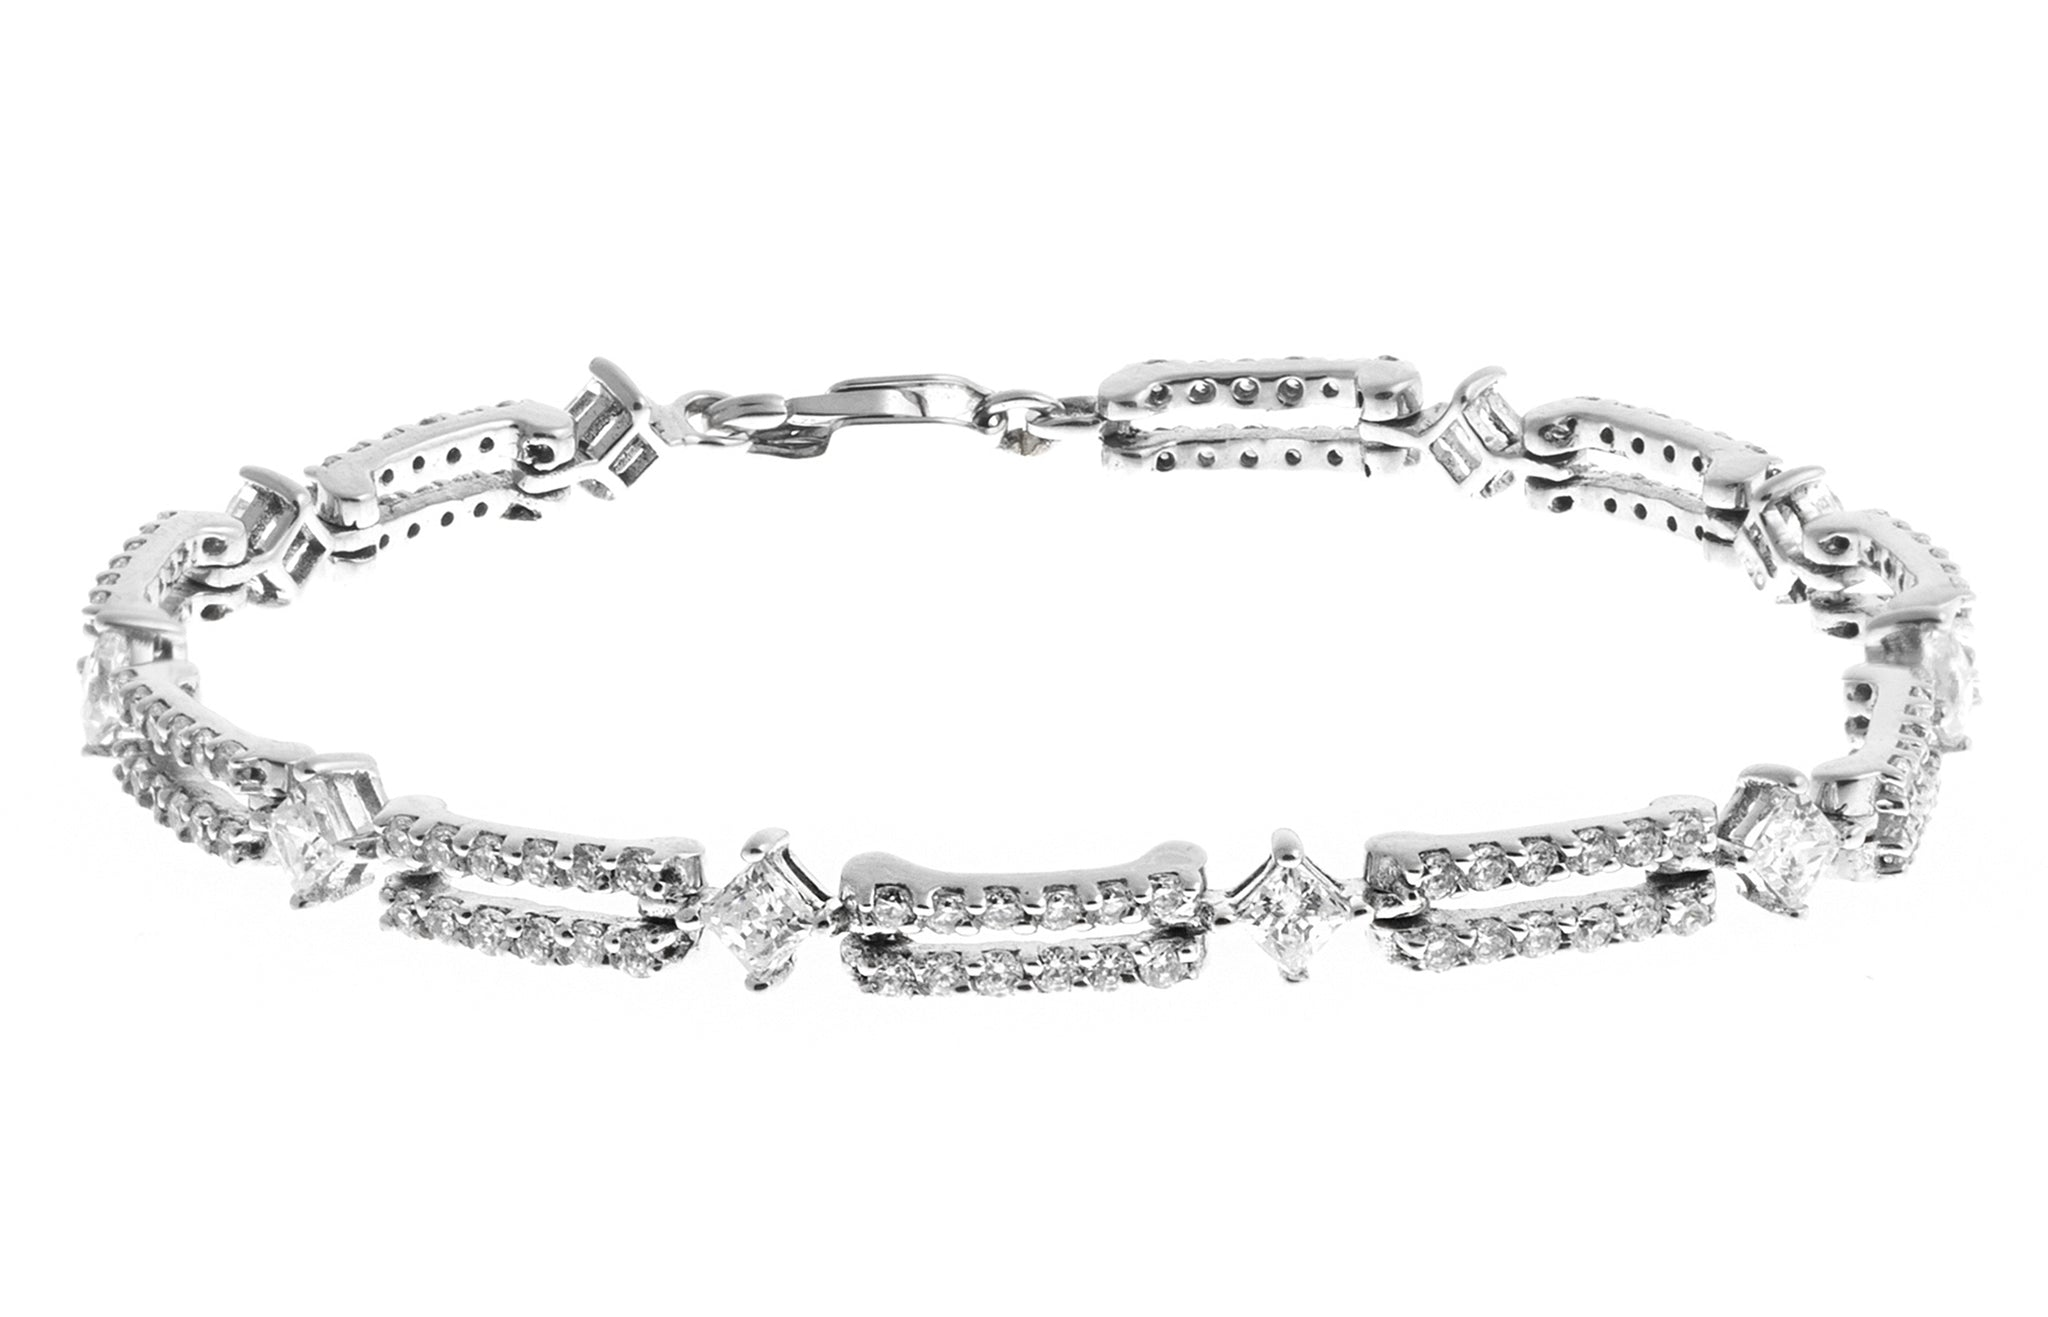 18ct White Gold Bracelet with Cubic Zirconia Stones (13.3g) LBR-1162